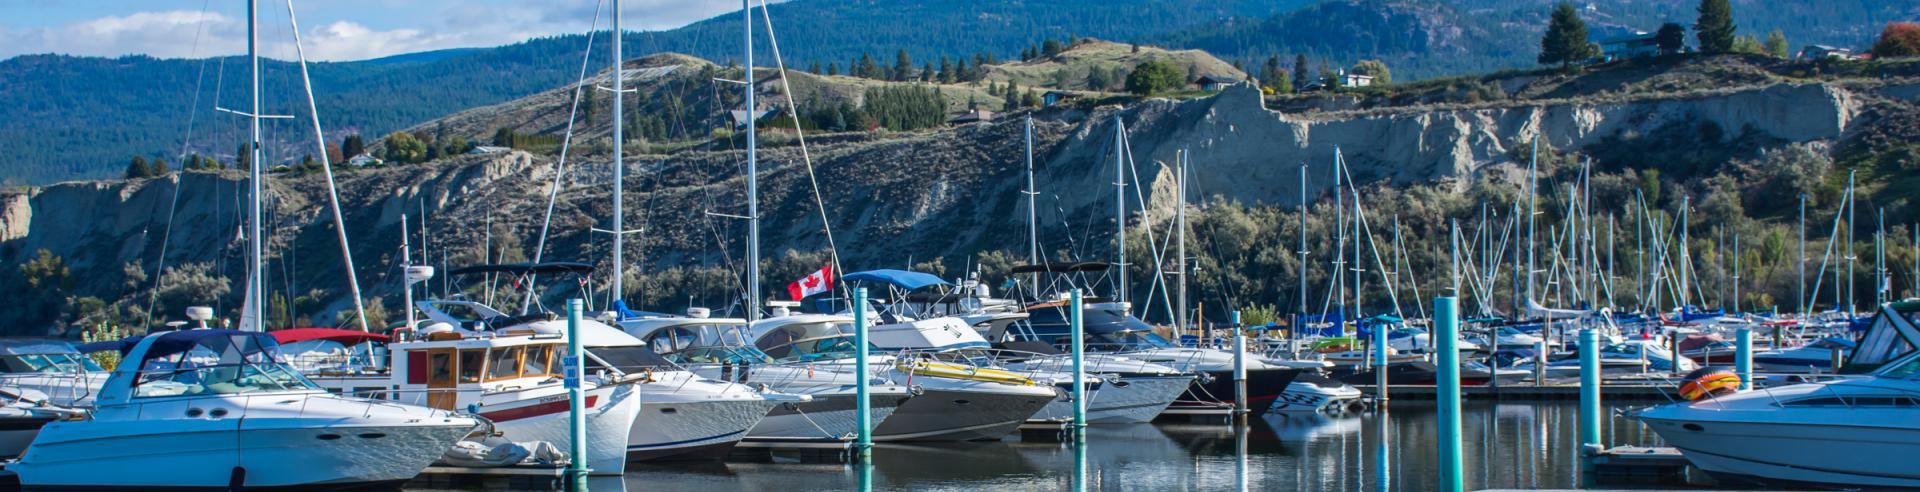 Penticton Yacht Club and Marina